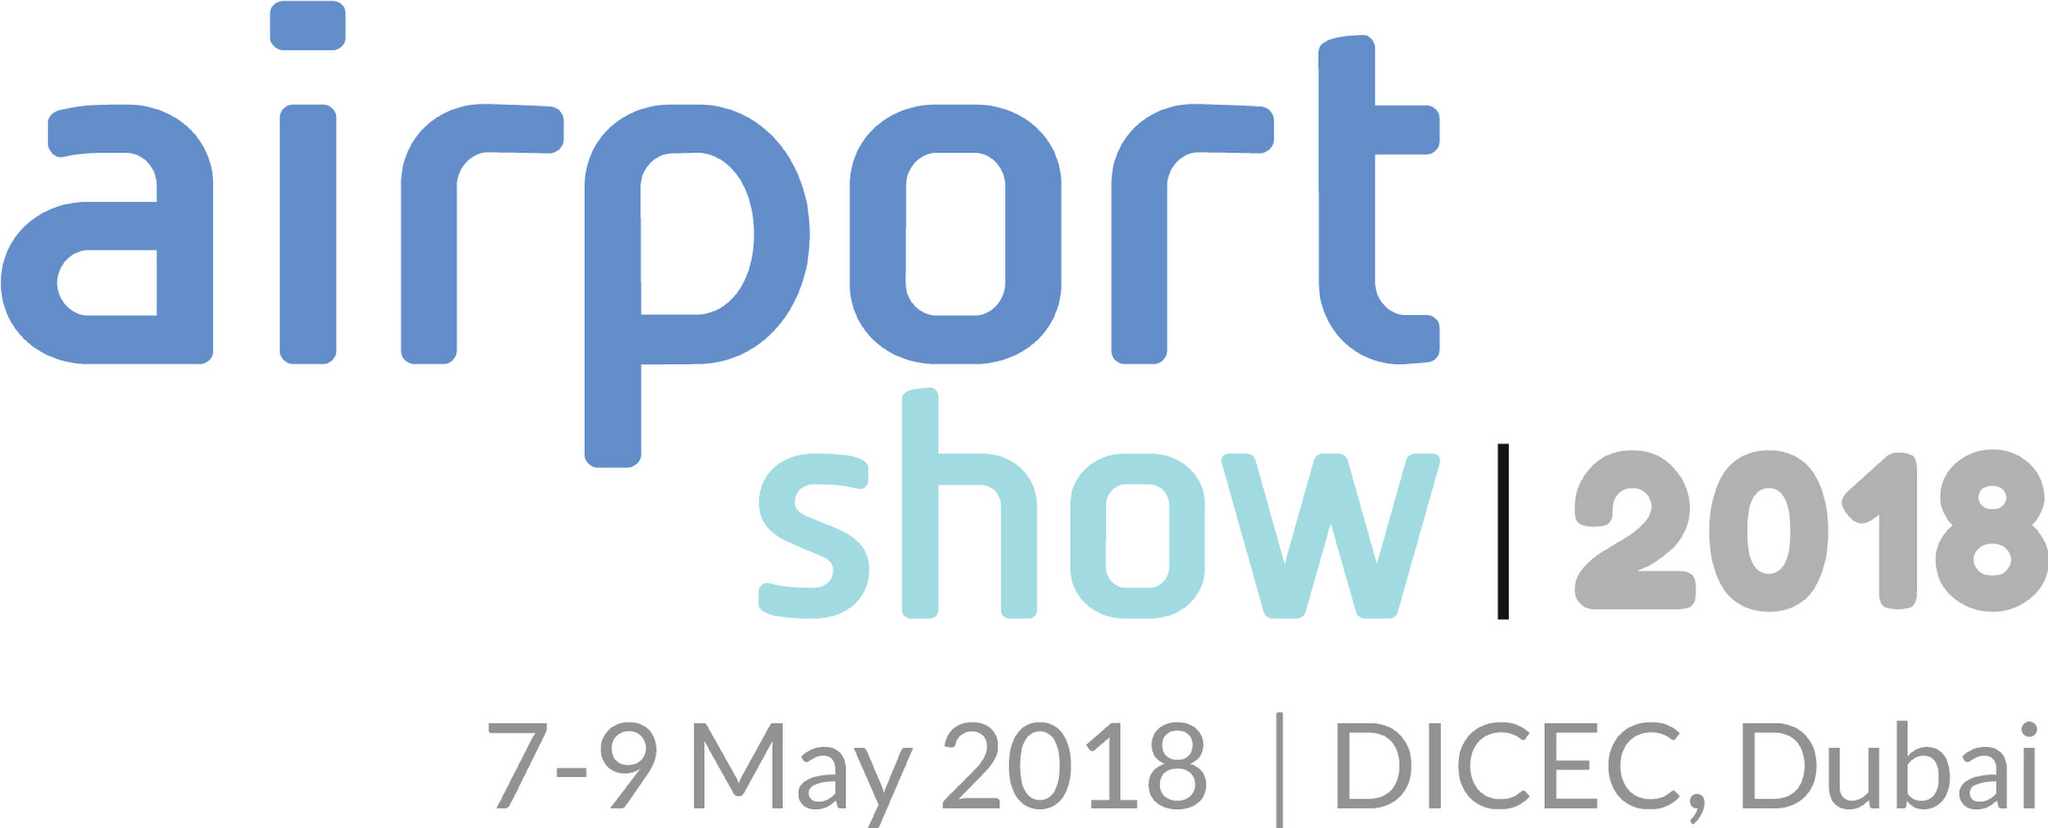 Airport Show 2018, DICEC Dubai UAE, 7-9 May 2018